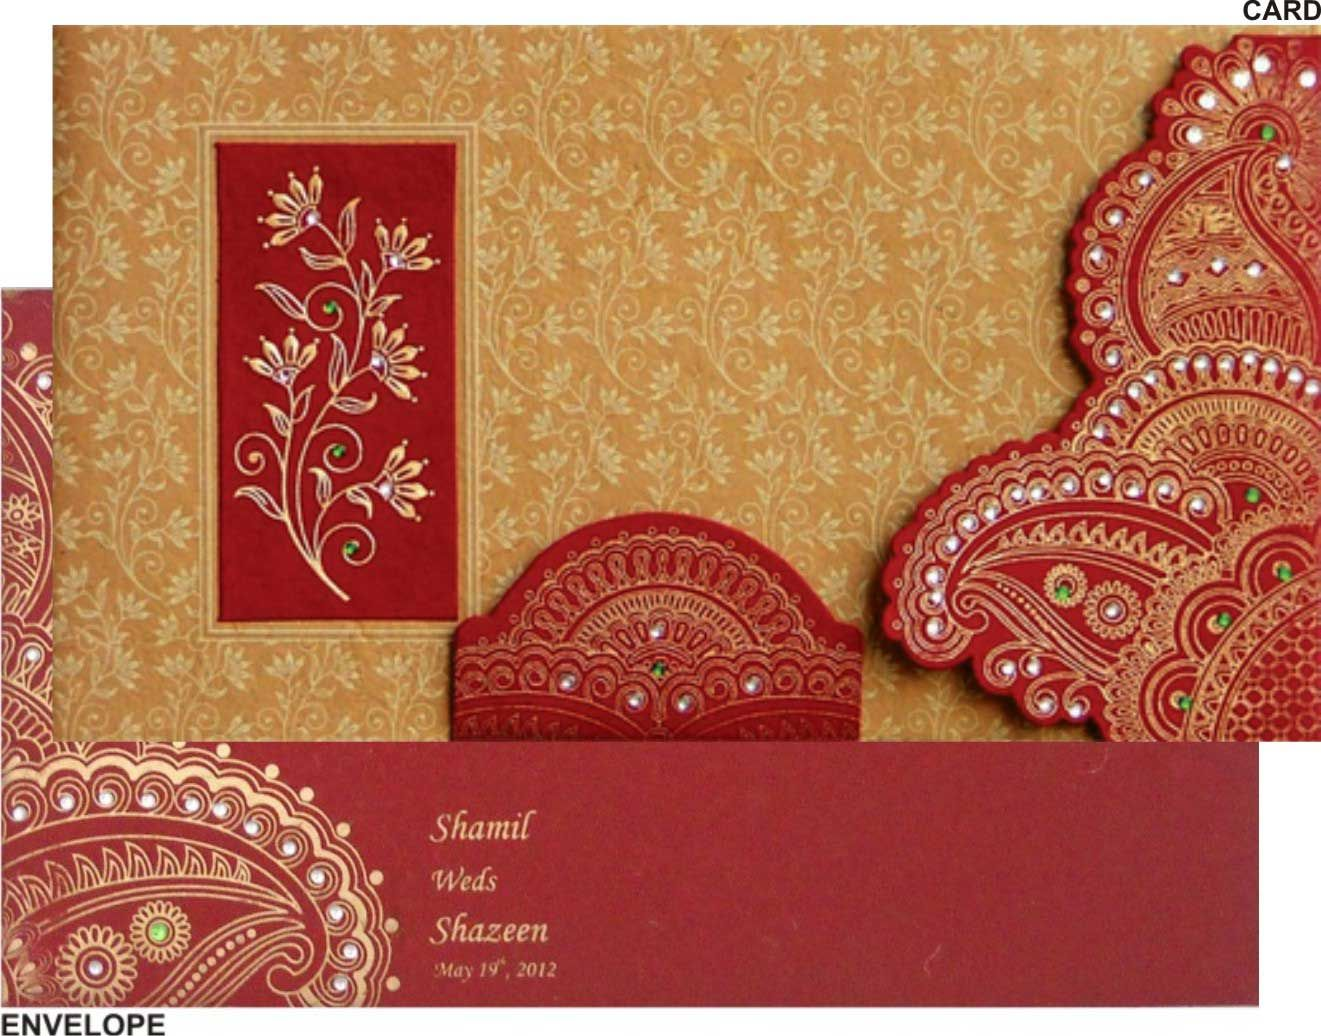 Wedding Card Templates Wedding Card Design Wallpaper